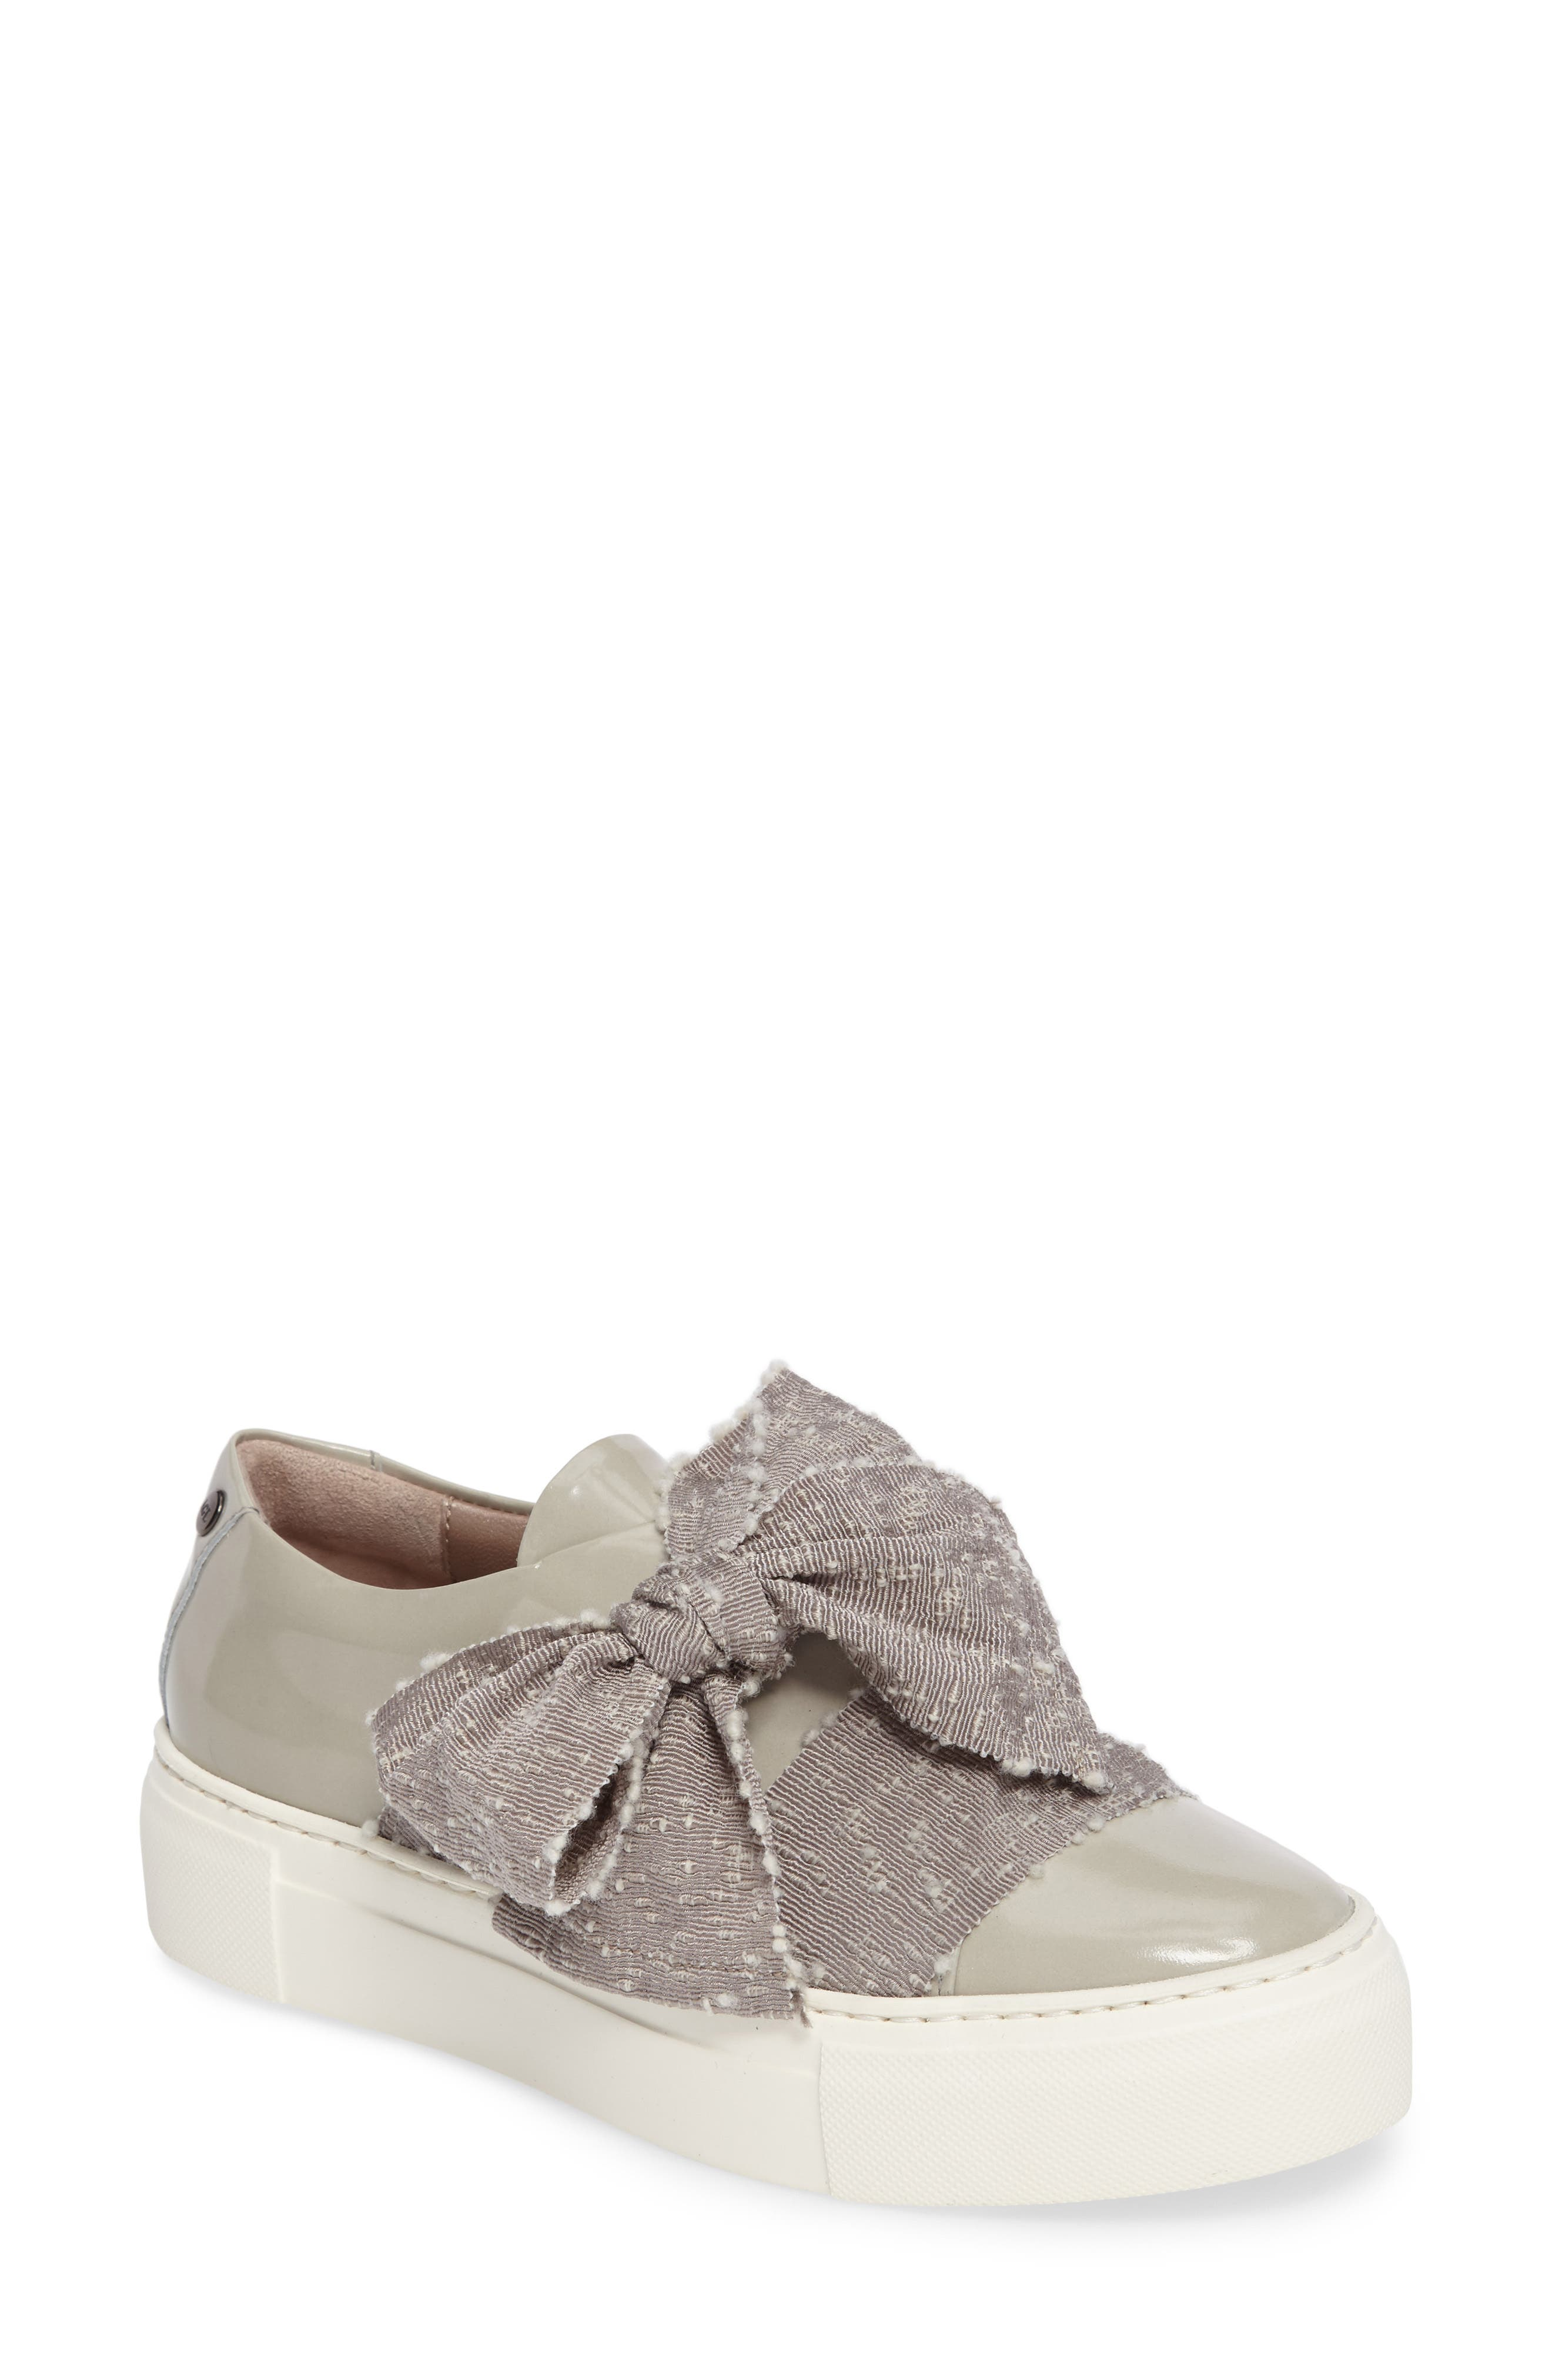 Bow Platform Sneaker,                         Main,                         color, Marble Leather